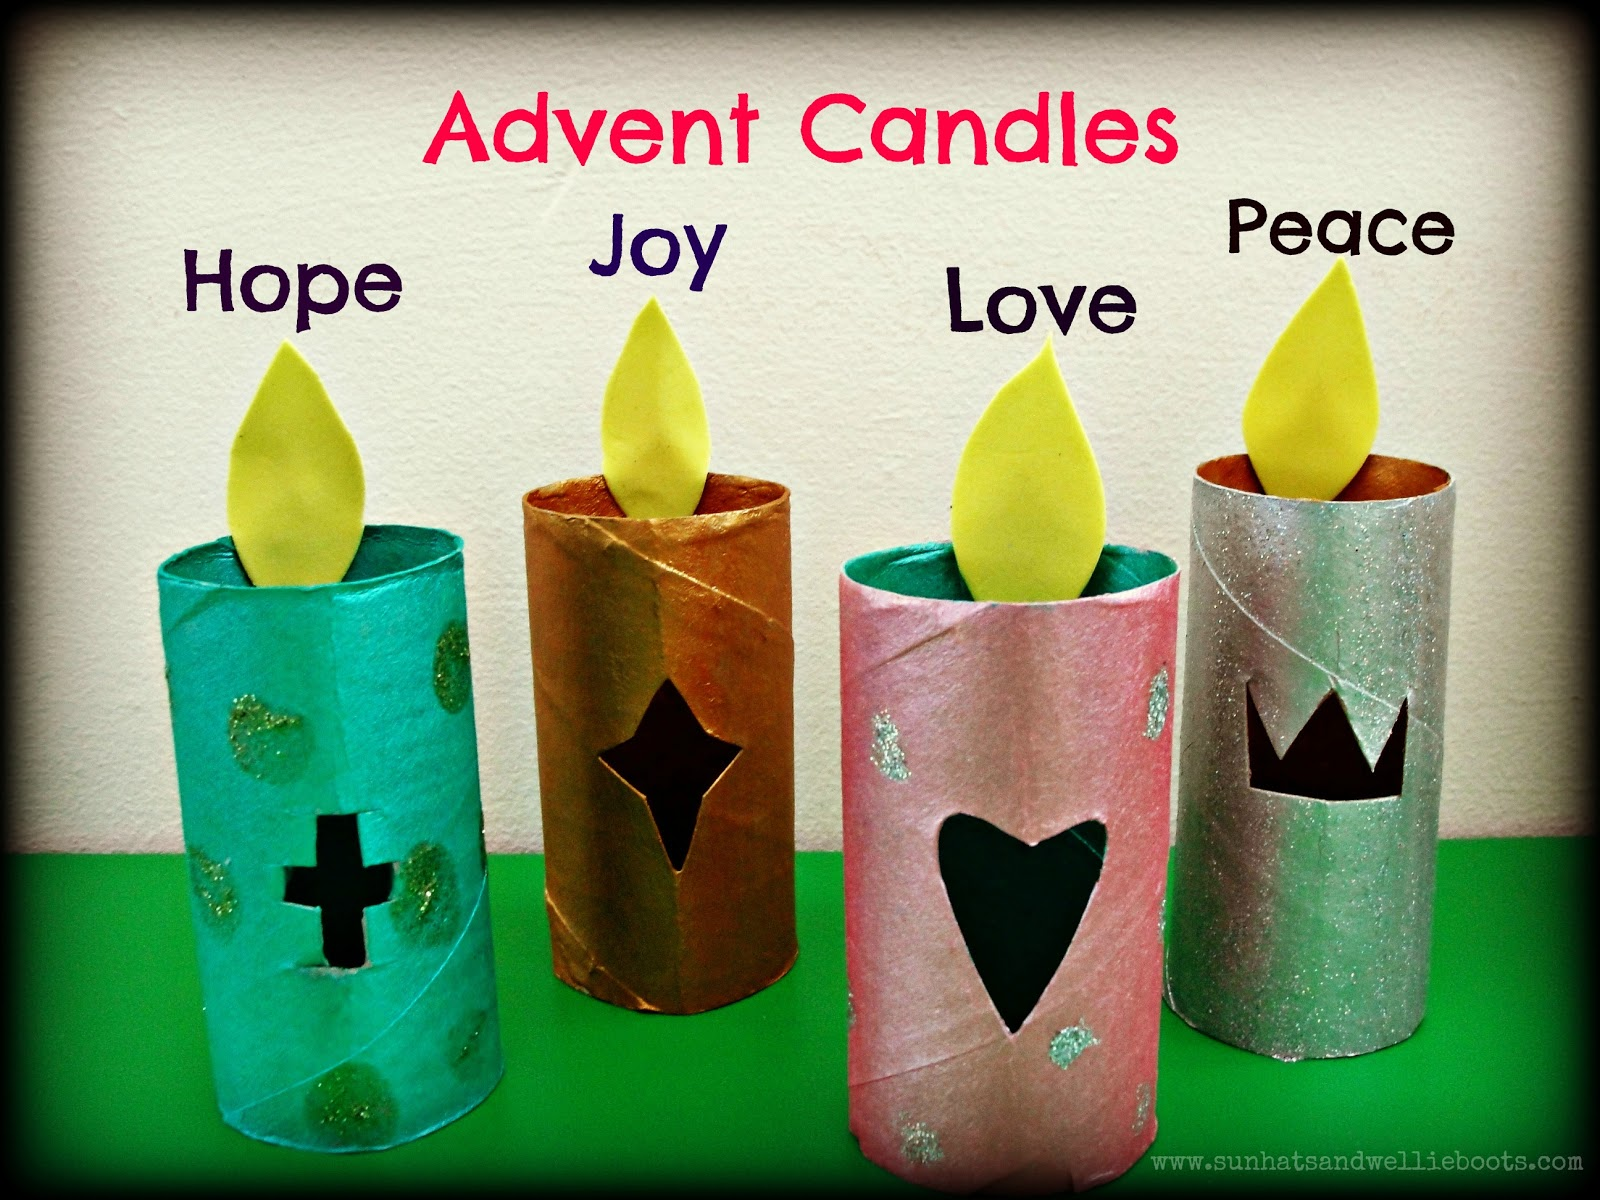 sun hats wellie boots glowing paper advent candles. Black Bedroom Furniture Sets. Home Design Ideas